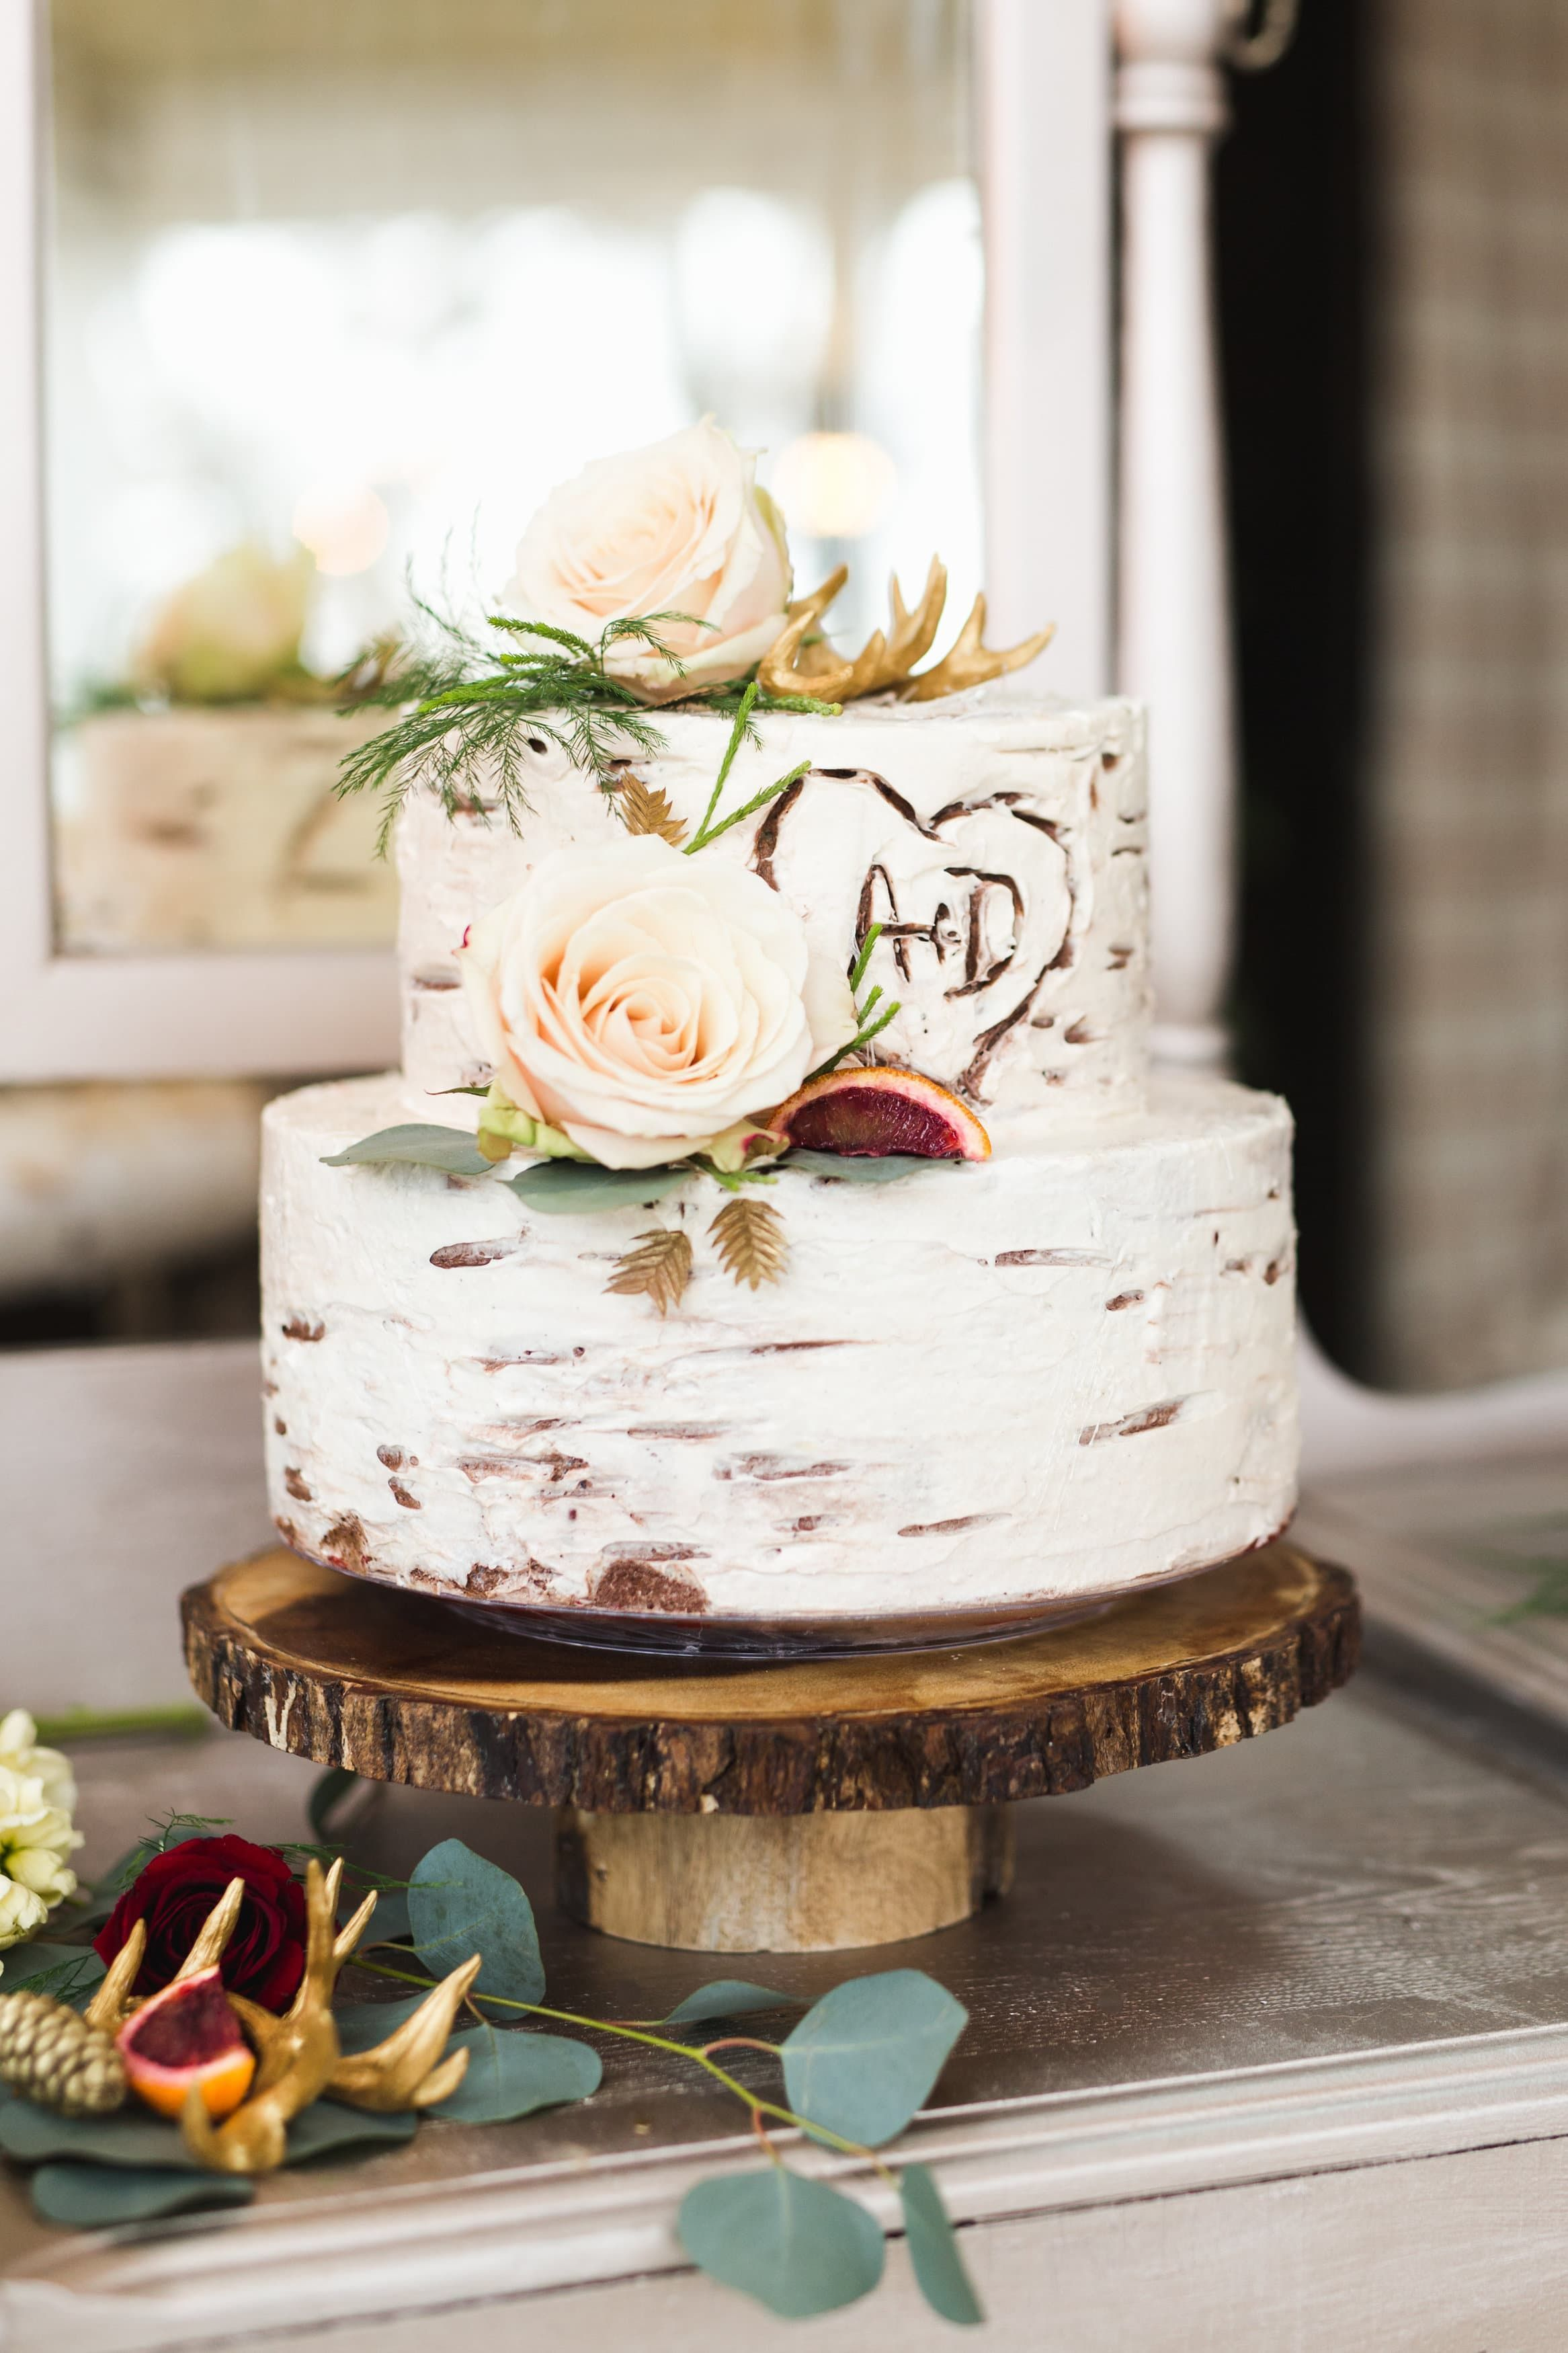 10 Sweet and Stunning Summer Wedding Cakes